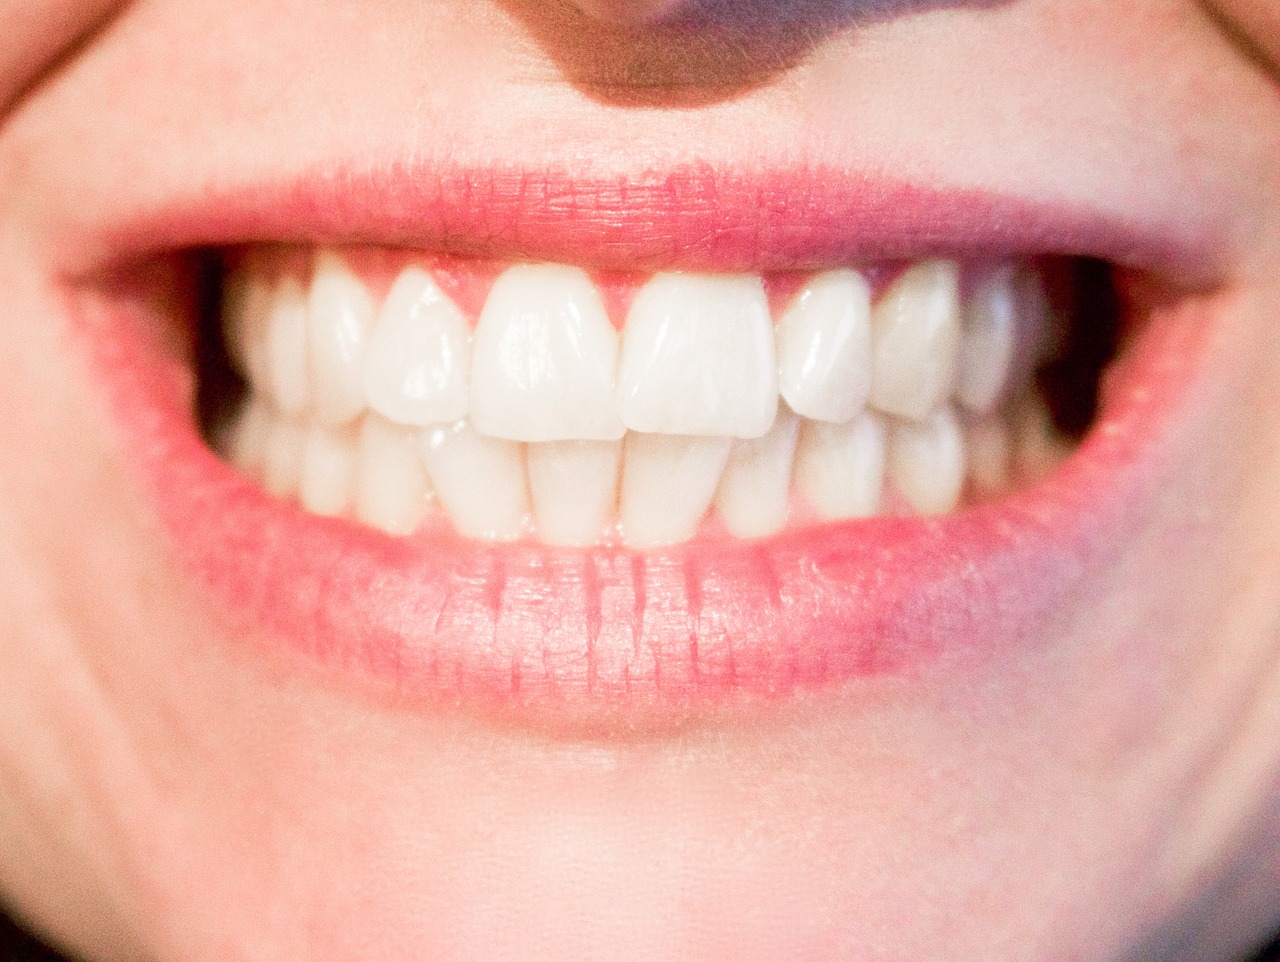 How To Whiten Teeth Without Baking Soda Fluoridefree